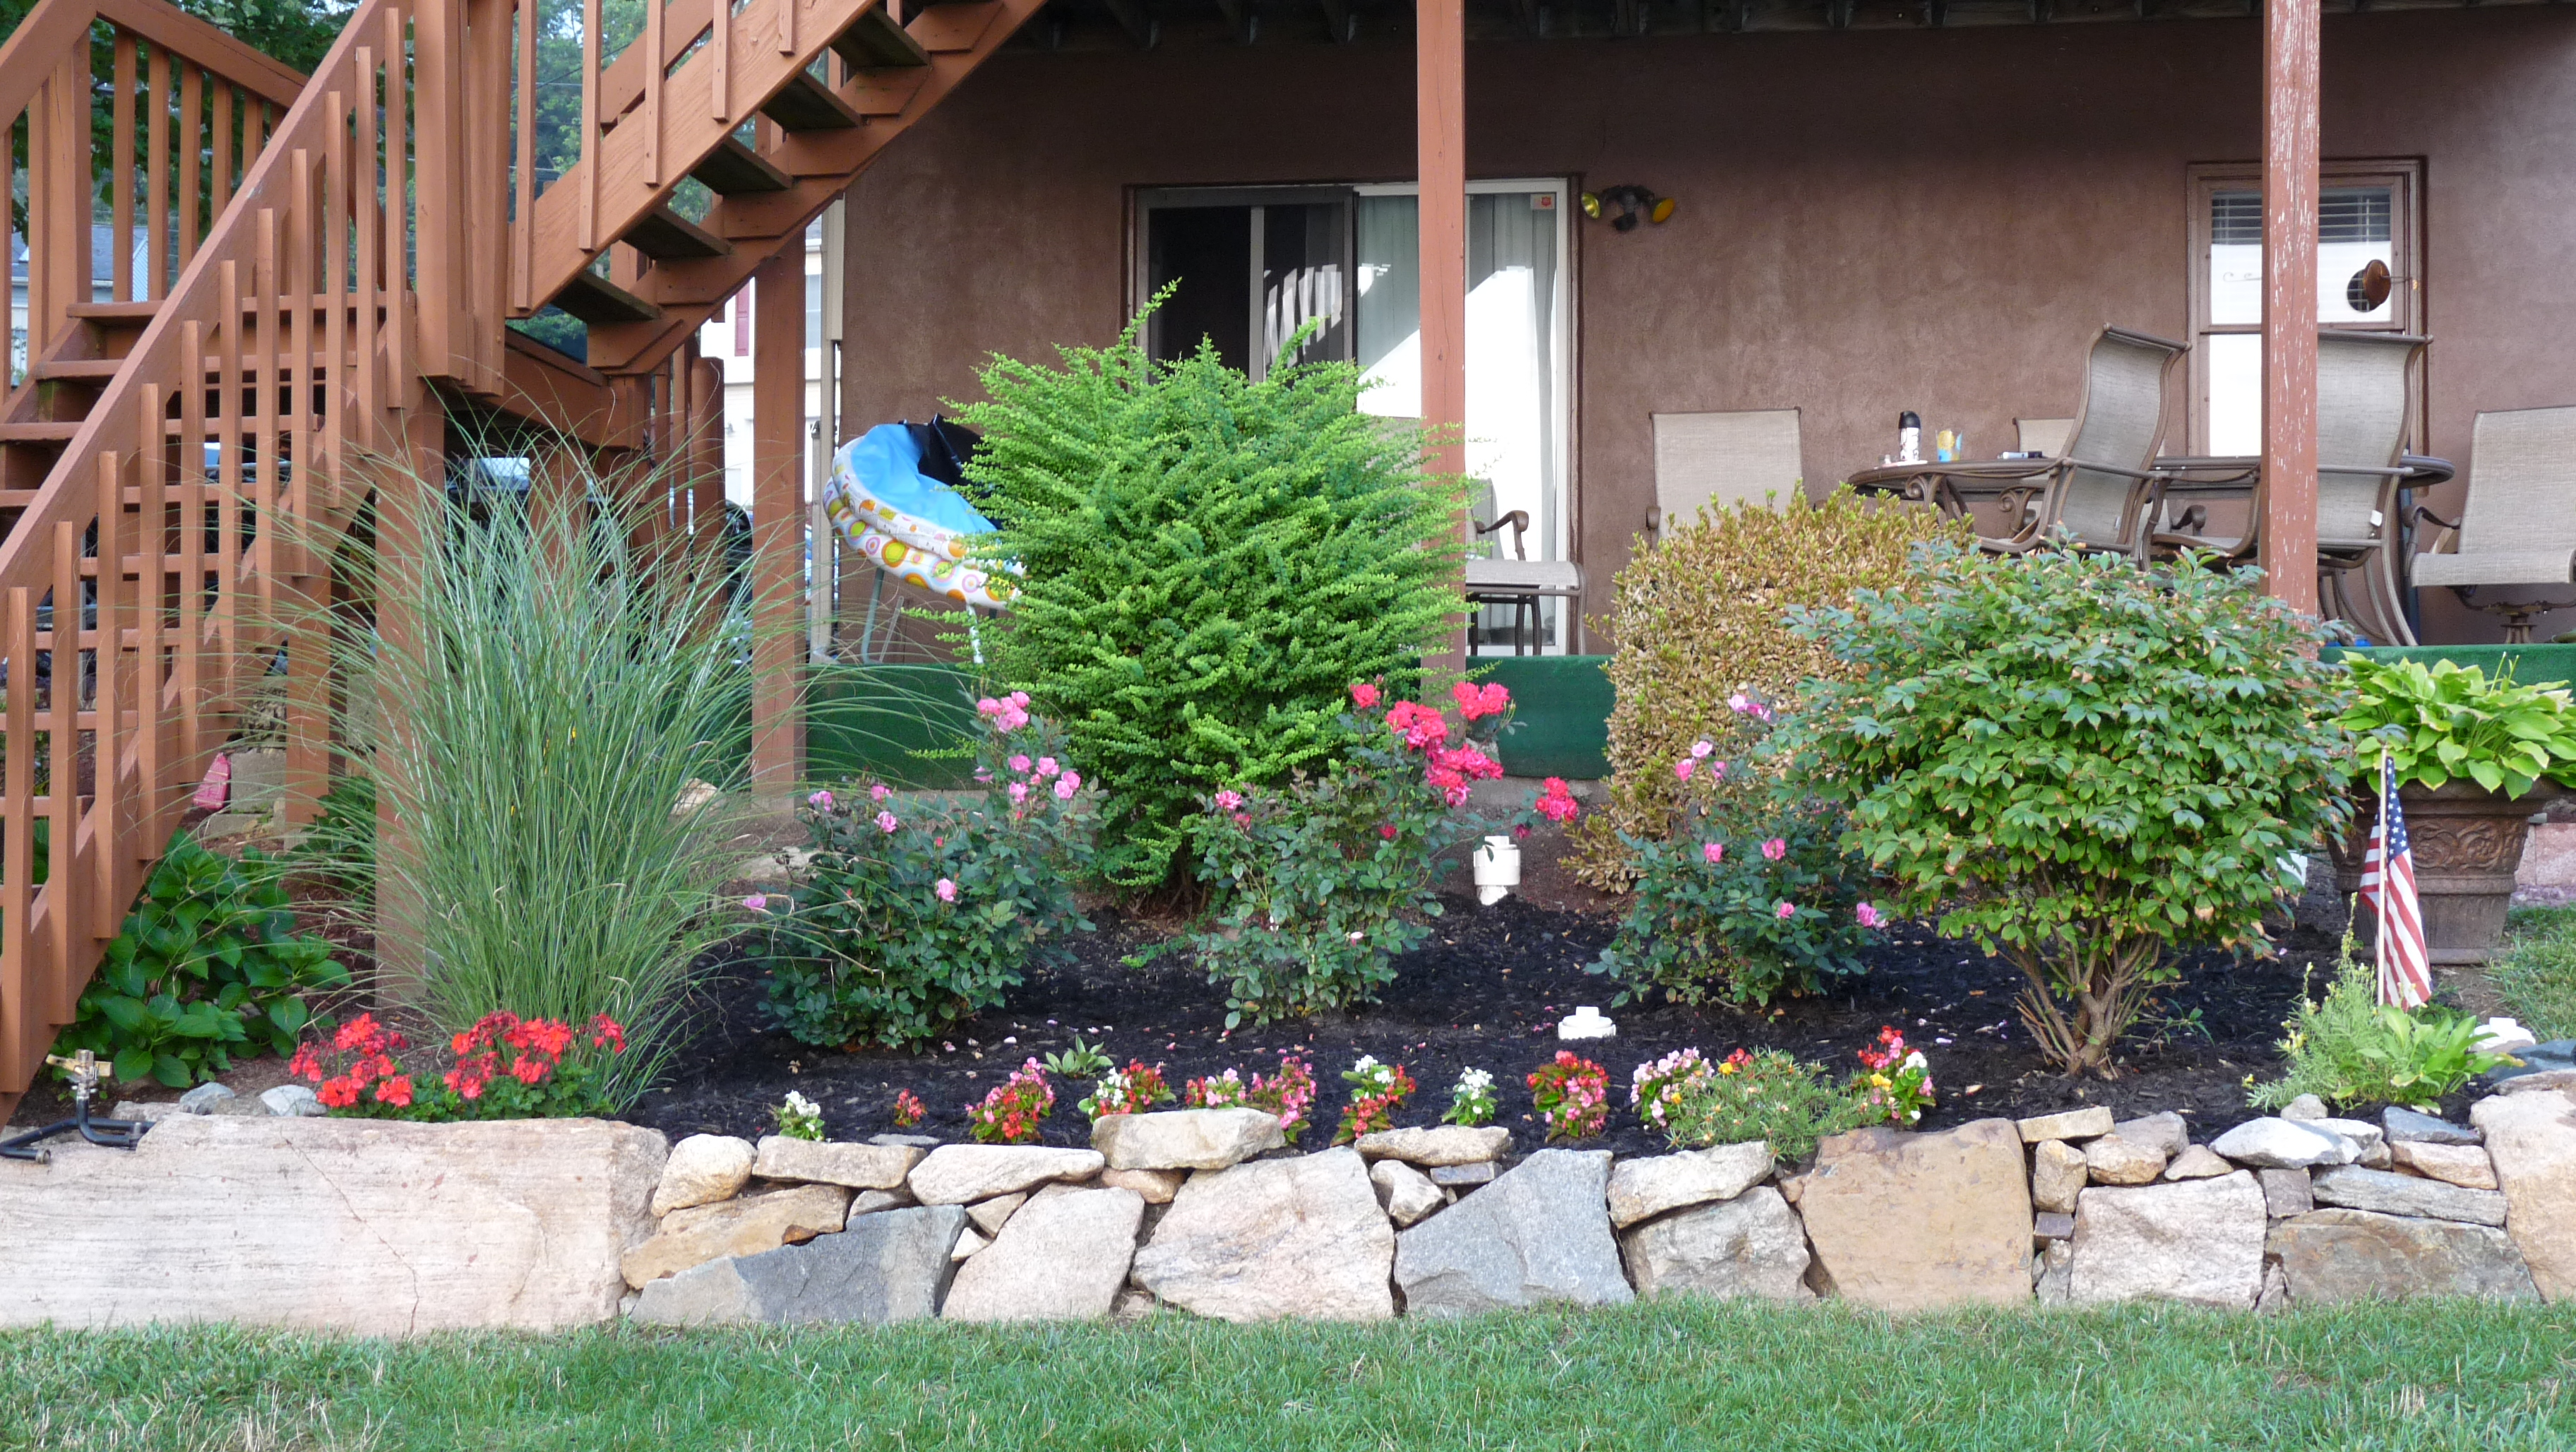 Our lake life how does your garden grow our lake life for How to plant bushes in front of house